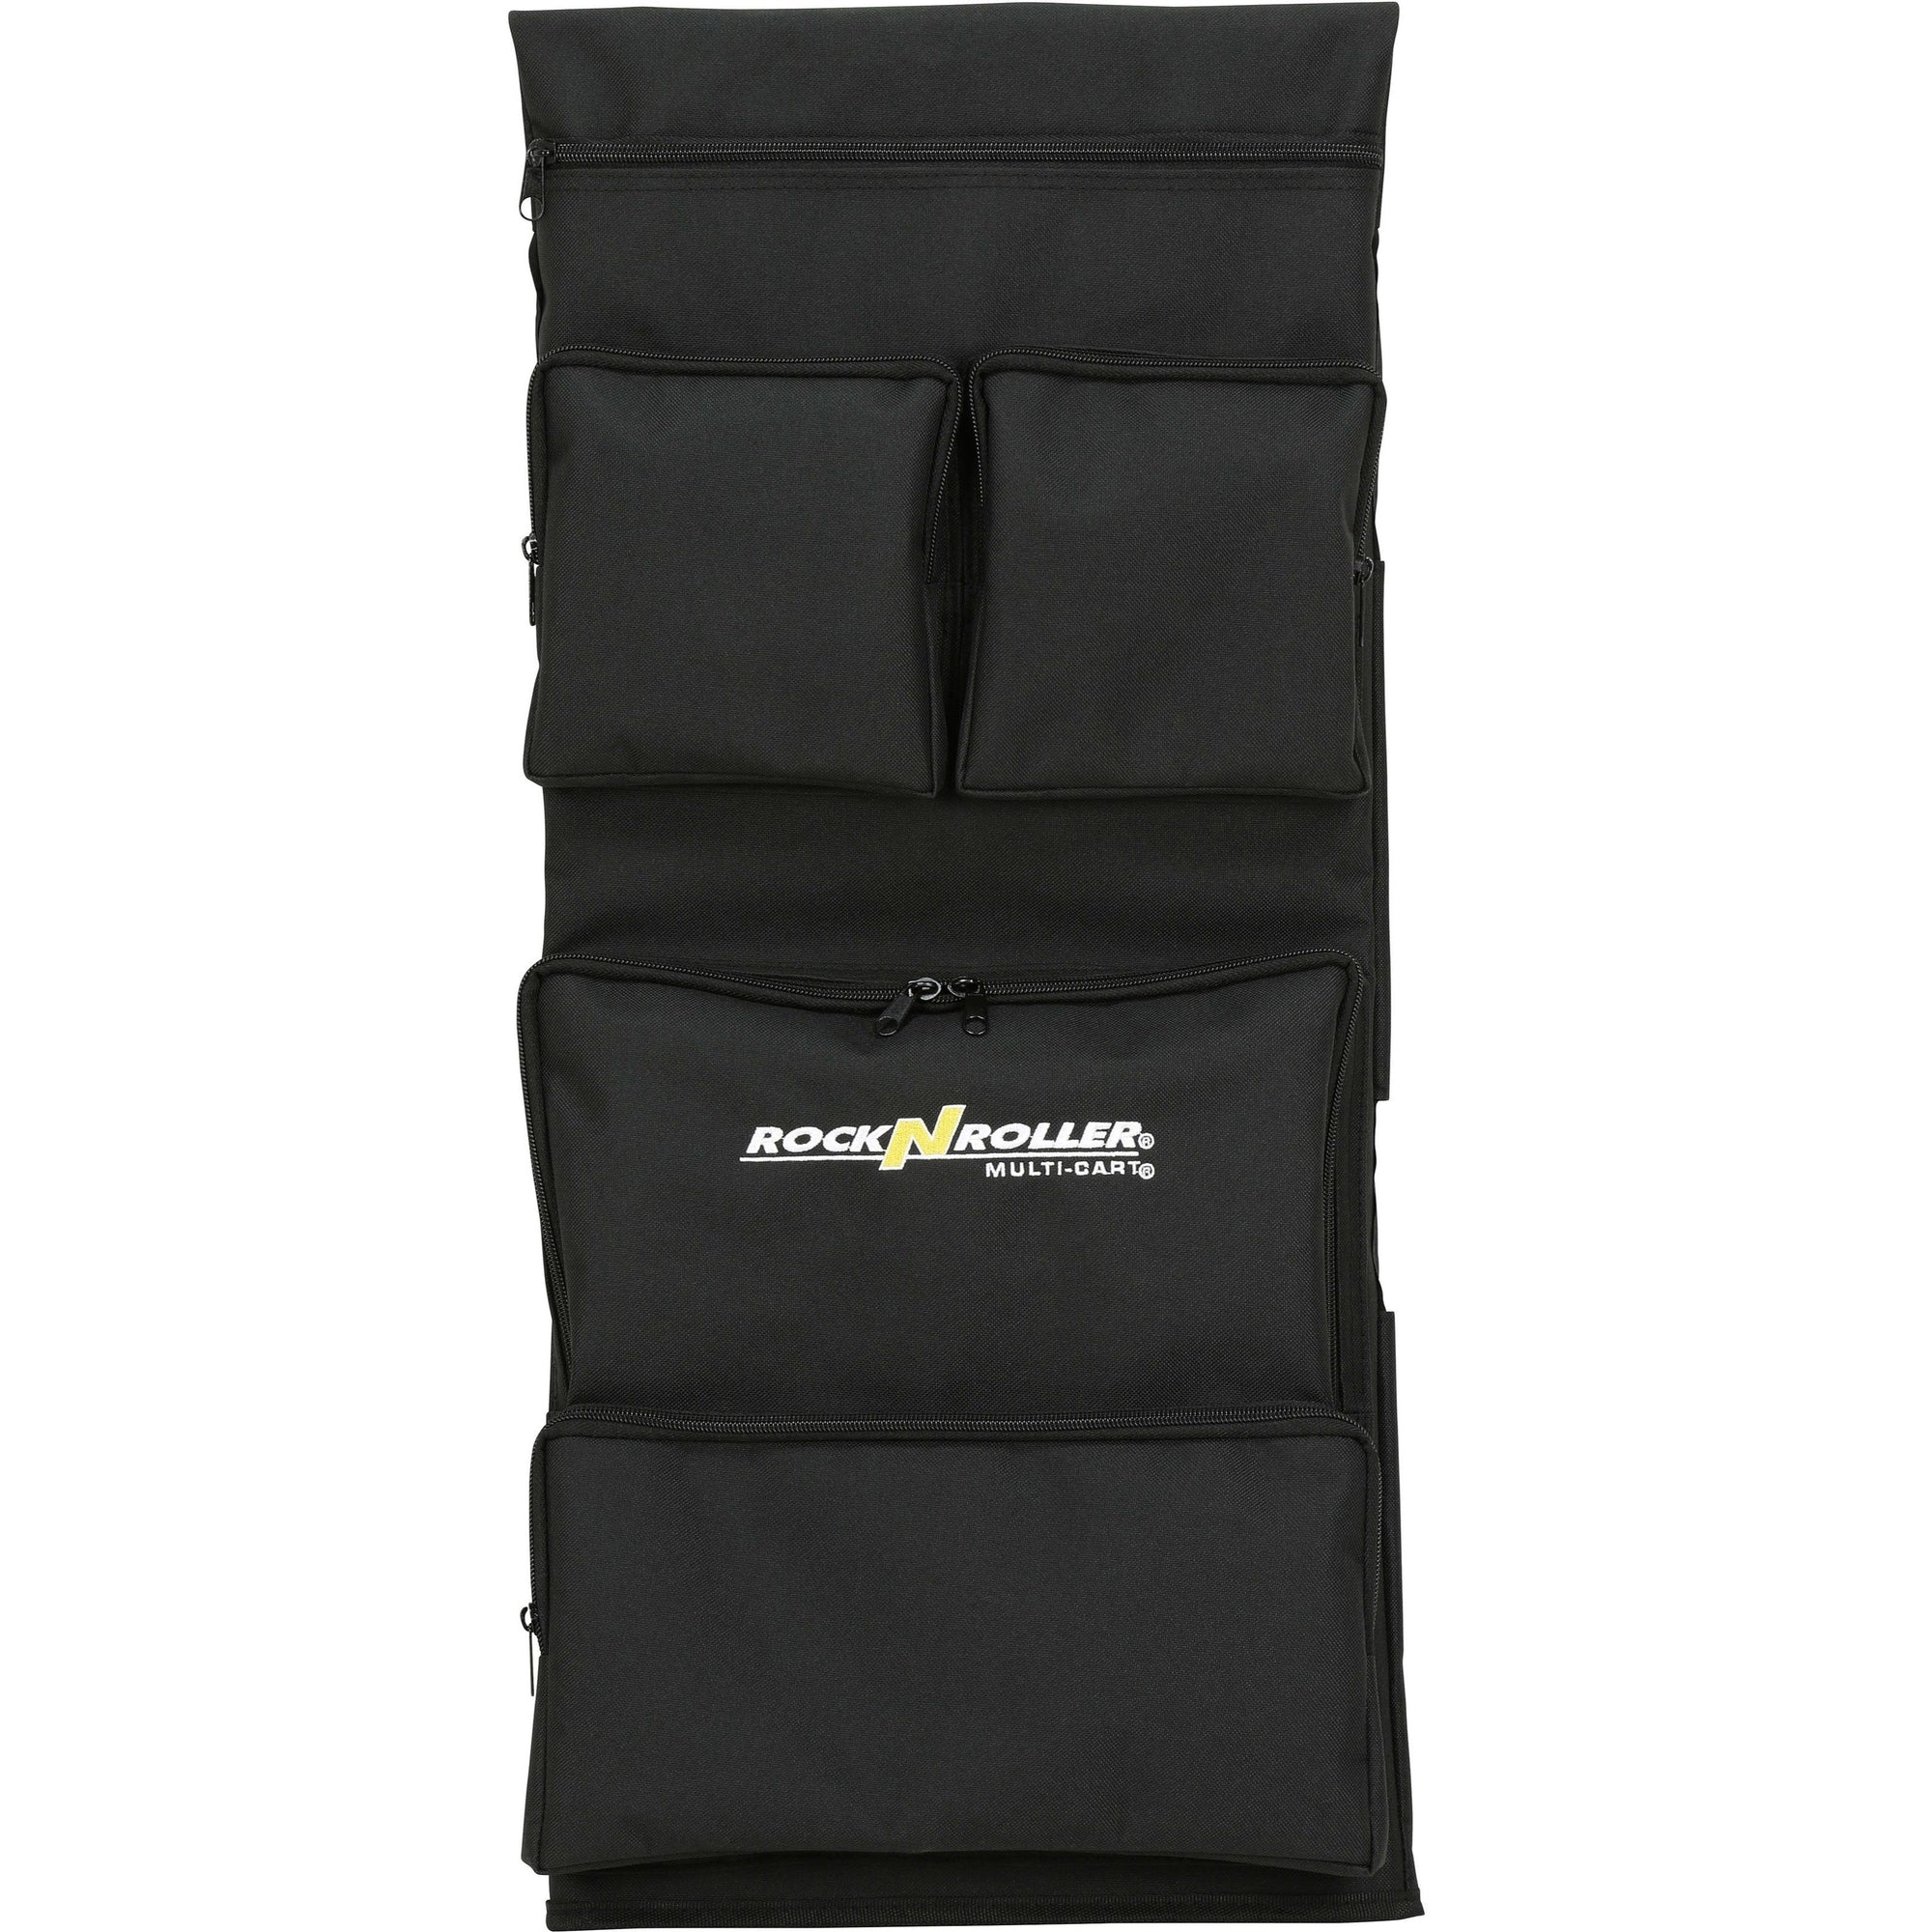 RocknRoller ToolAccessory Bag, RSA-TAB8, Medium